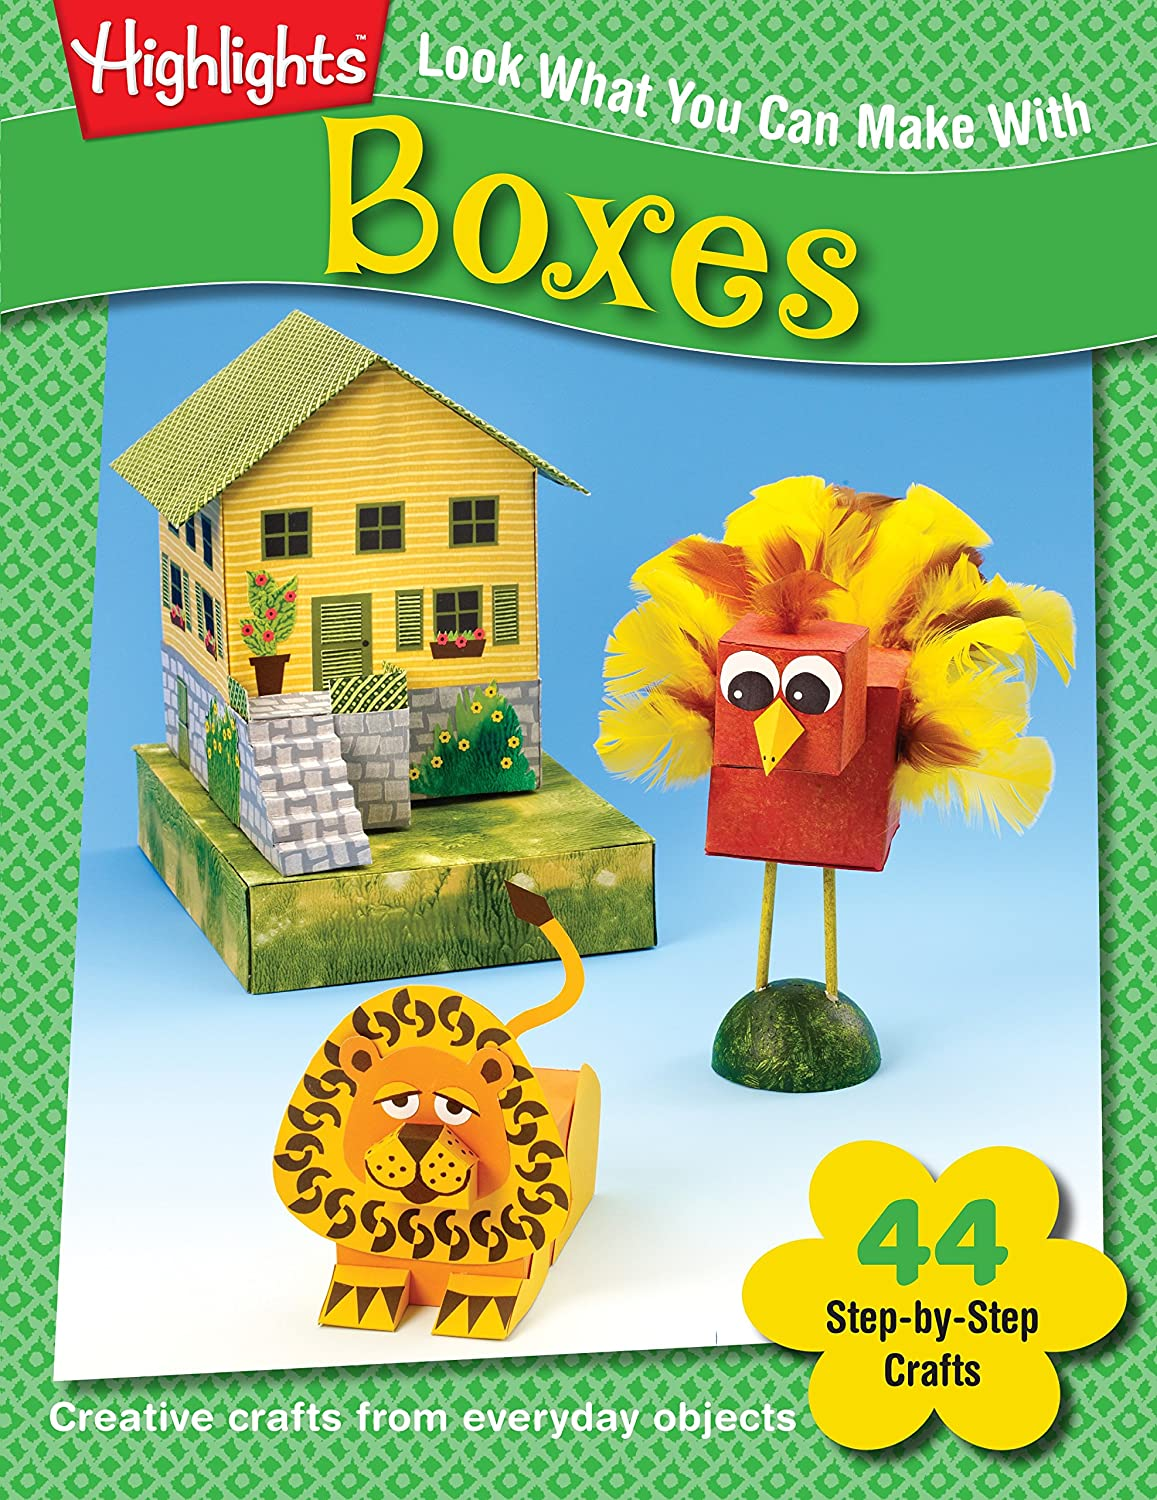 Look What You Can Make With Boxes: Creative crafts from everyday objects Highlights Highlights Press ELP397704 Activity Books